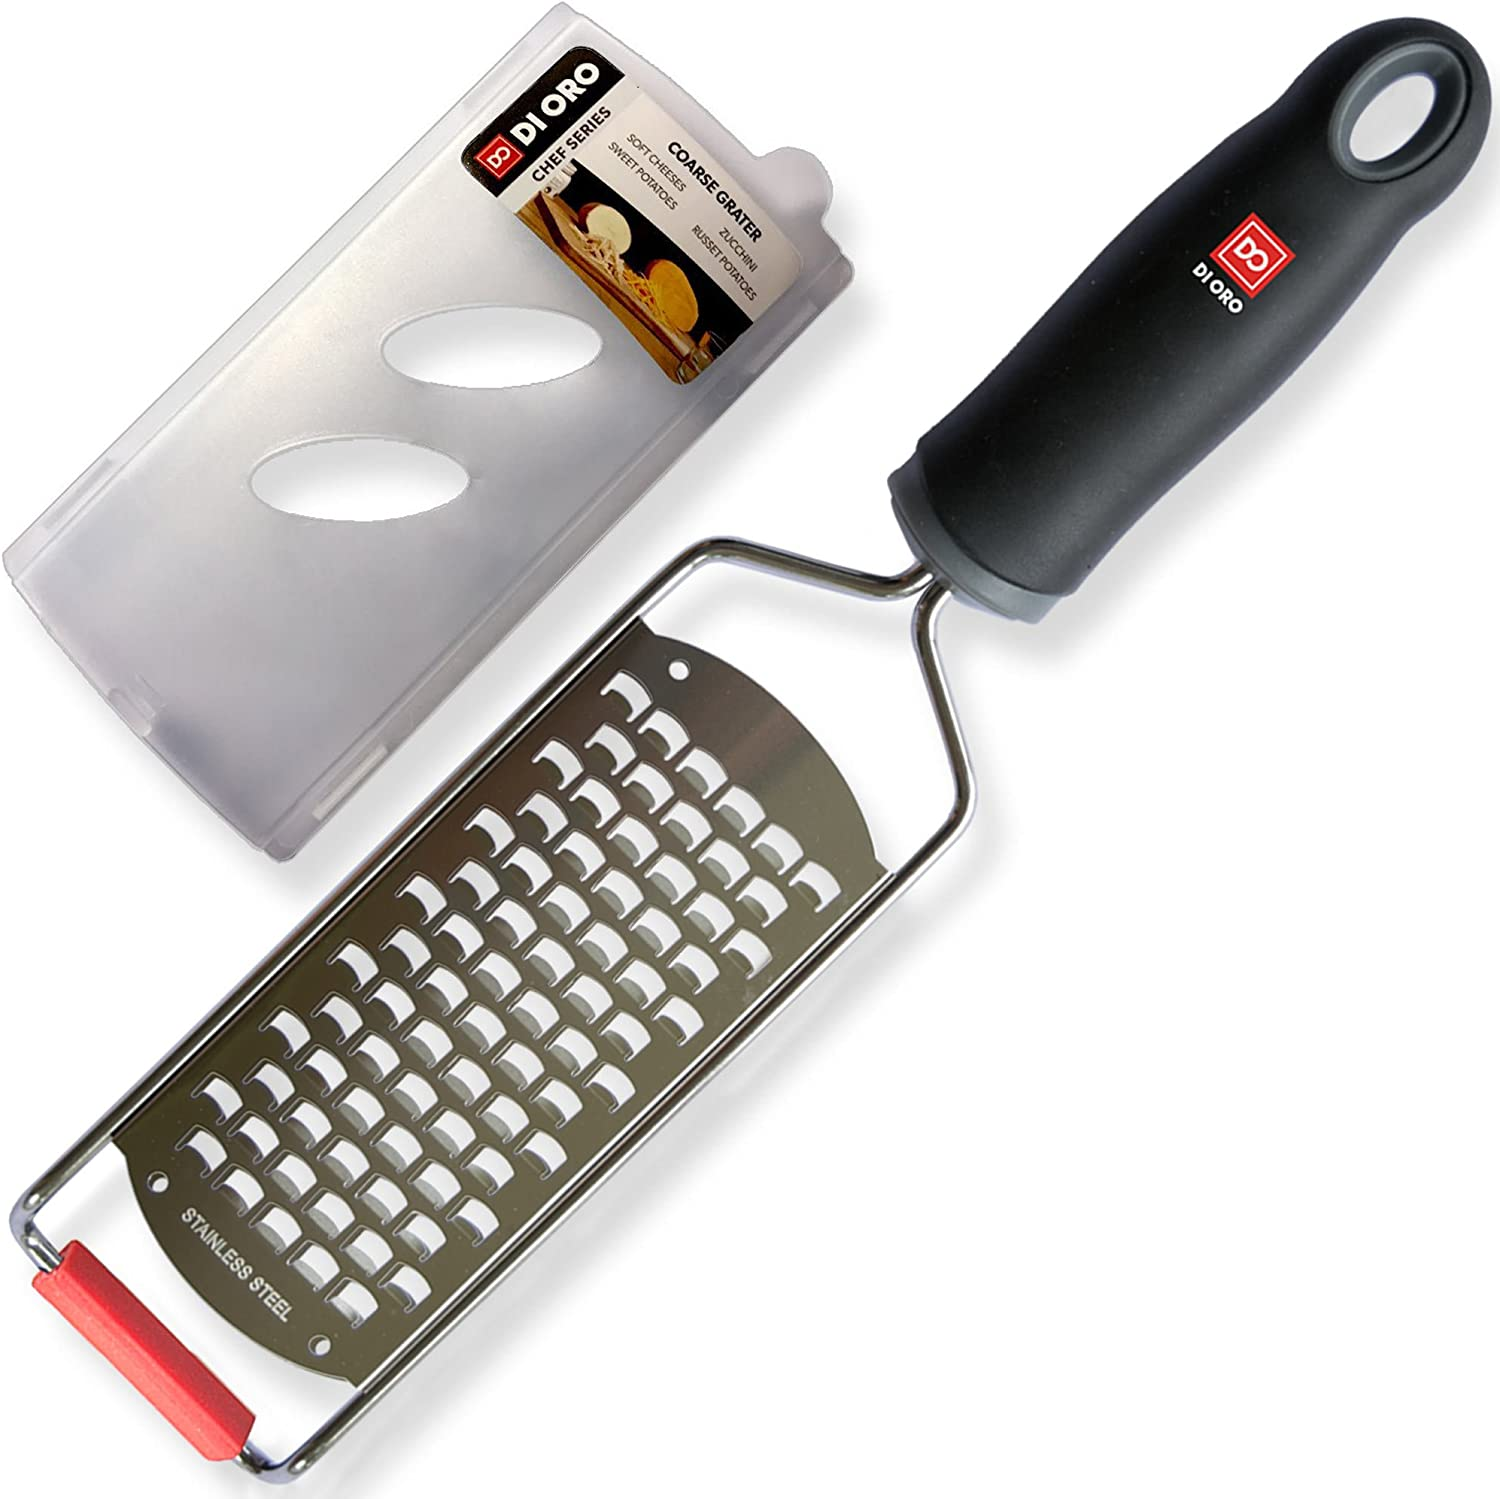 Di Oro Stainless Steel Handheld Cheese Grater – Comfort Non-Slip Handle and Razor Sharp Blades – Easily Grates All Types of Cheeses, Fruits, Vegetables, and More – Dishwasher Safe Easy to Clean